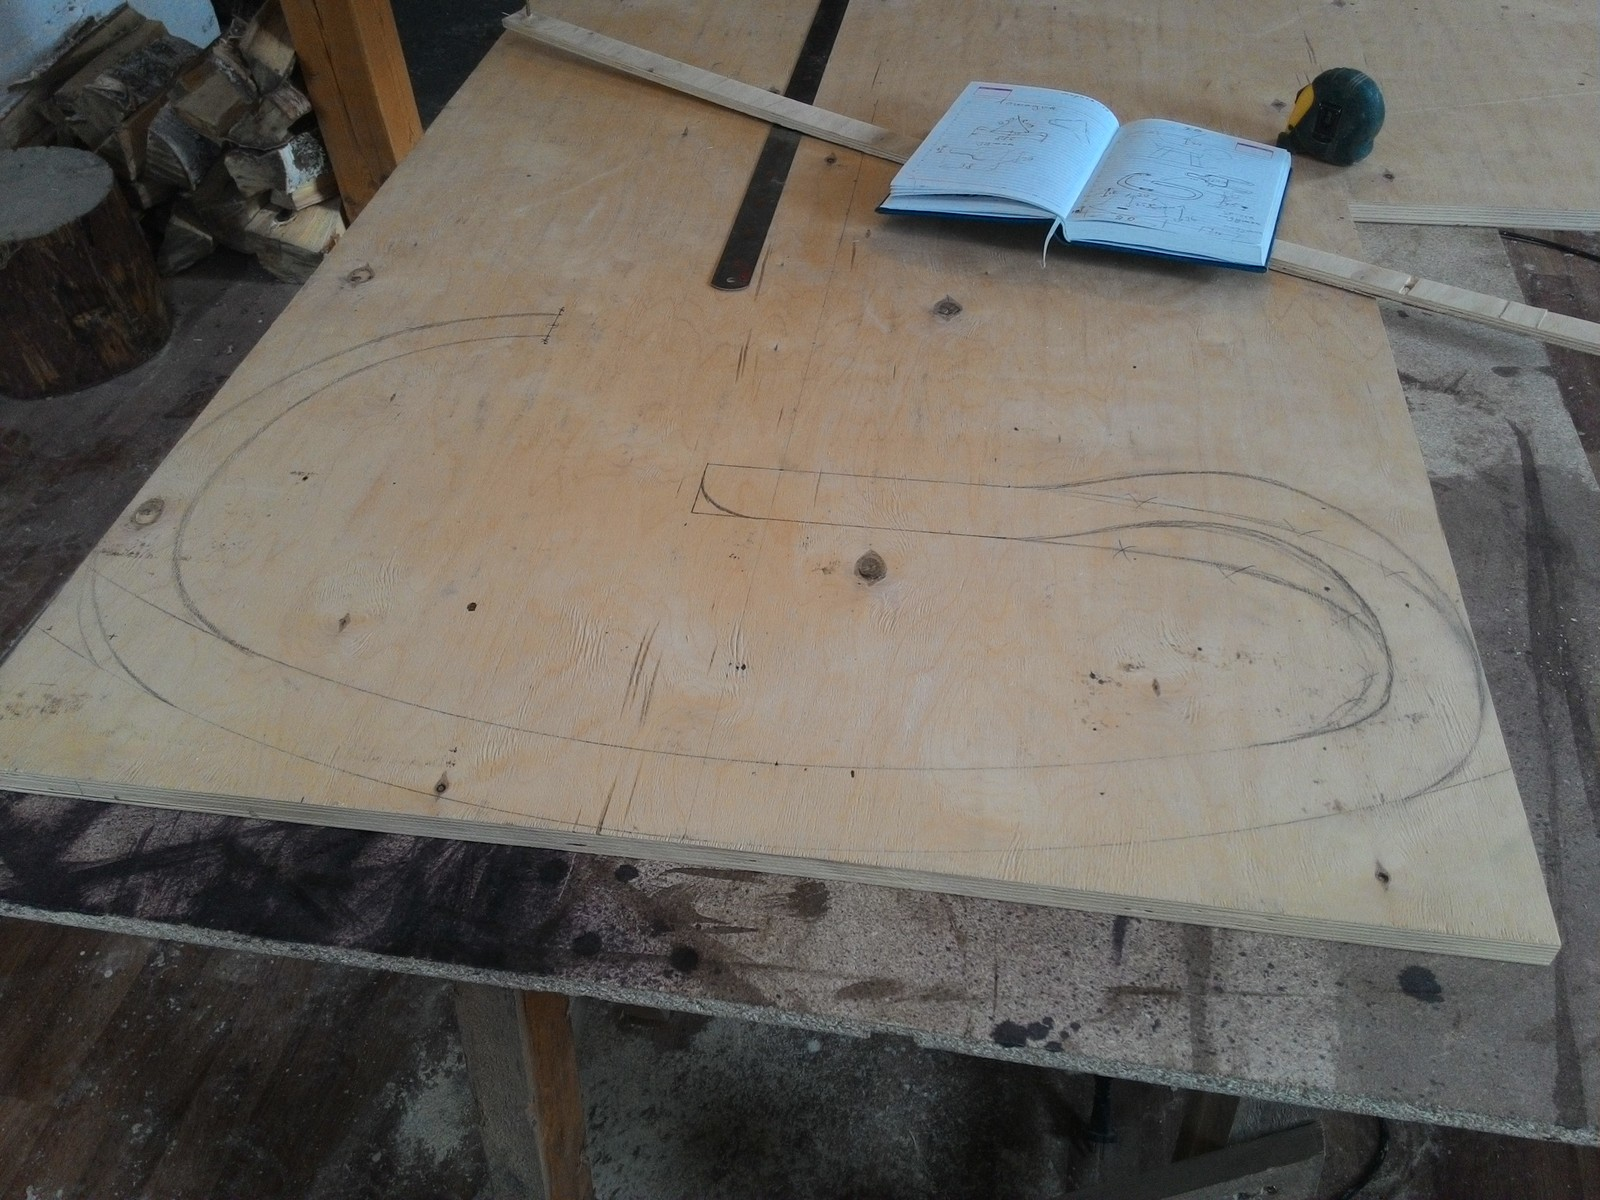 Rocking horse for a child with their own hands Seats, long, height, made, workmanship, after, decided, you can, runners, Bonus, plywood, compasses, modernization, donate, friends, family, watch, had, should, sloths